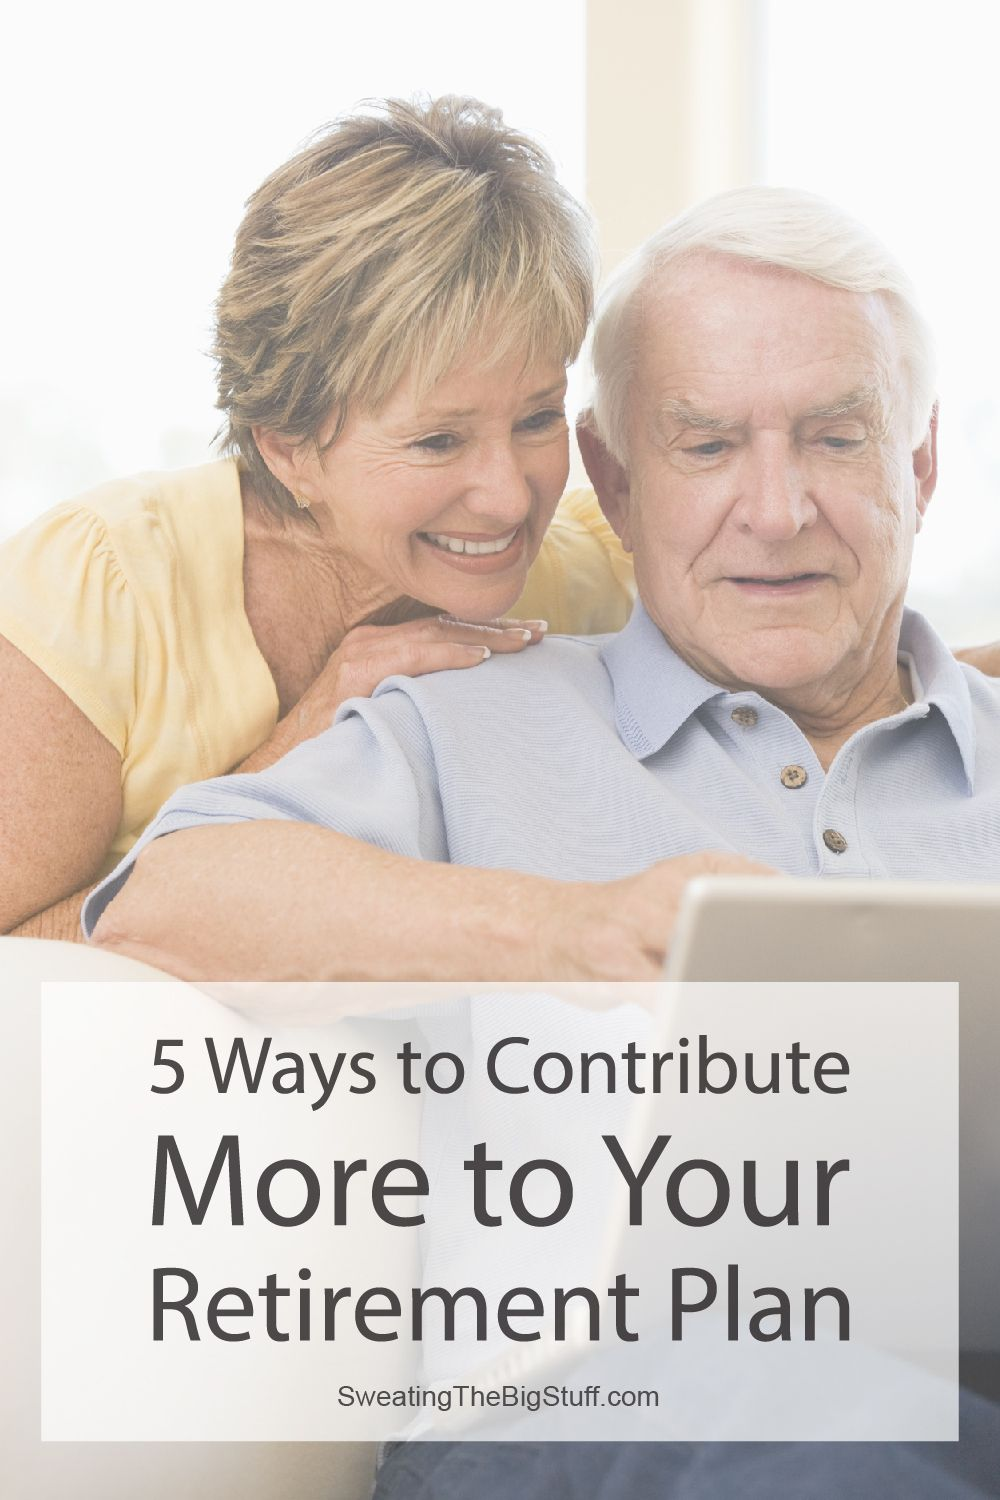 5 Ways to Contribute More to Your Retirement Plan